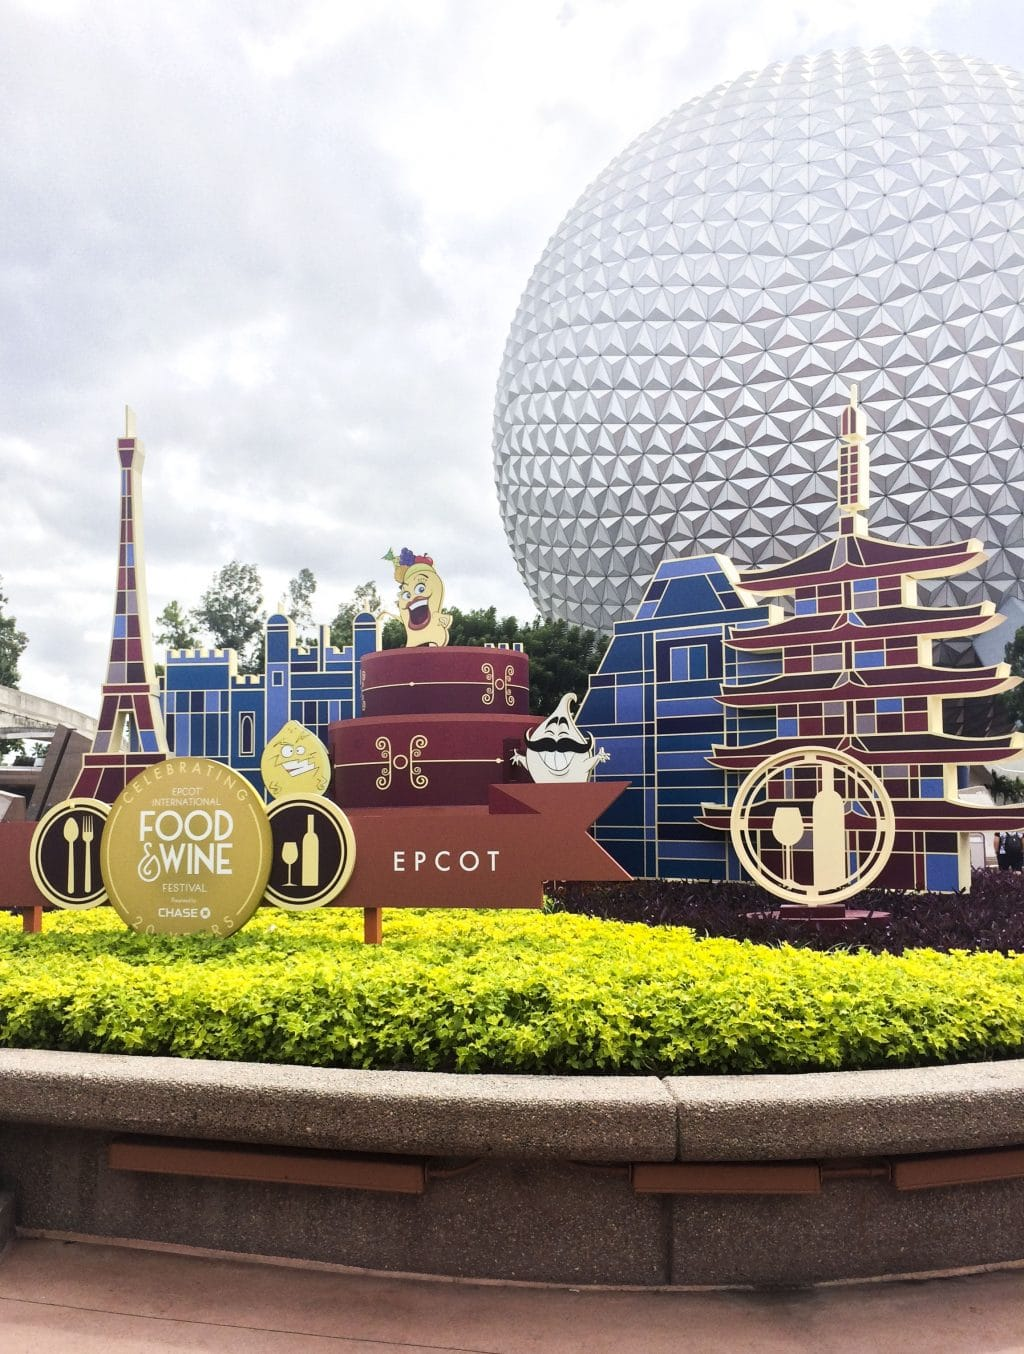 The entrance to the Food & Wine Festival at Epcot next to the large Epcot ball.